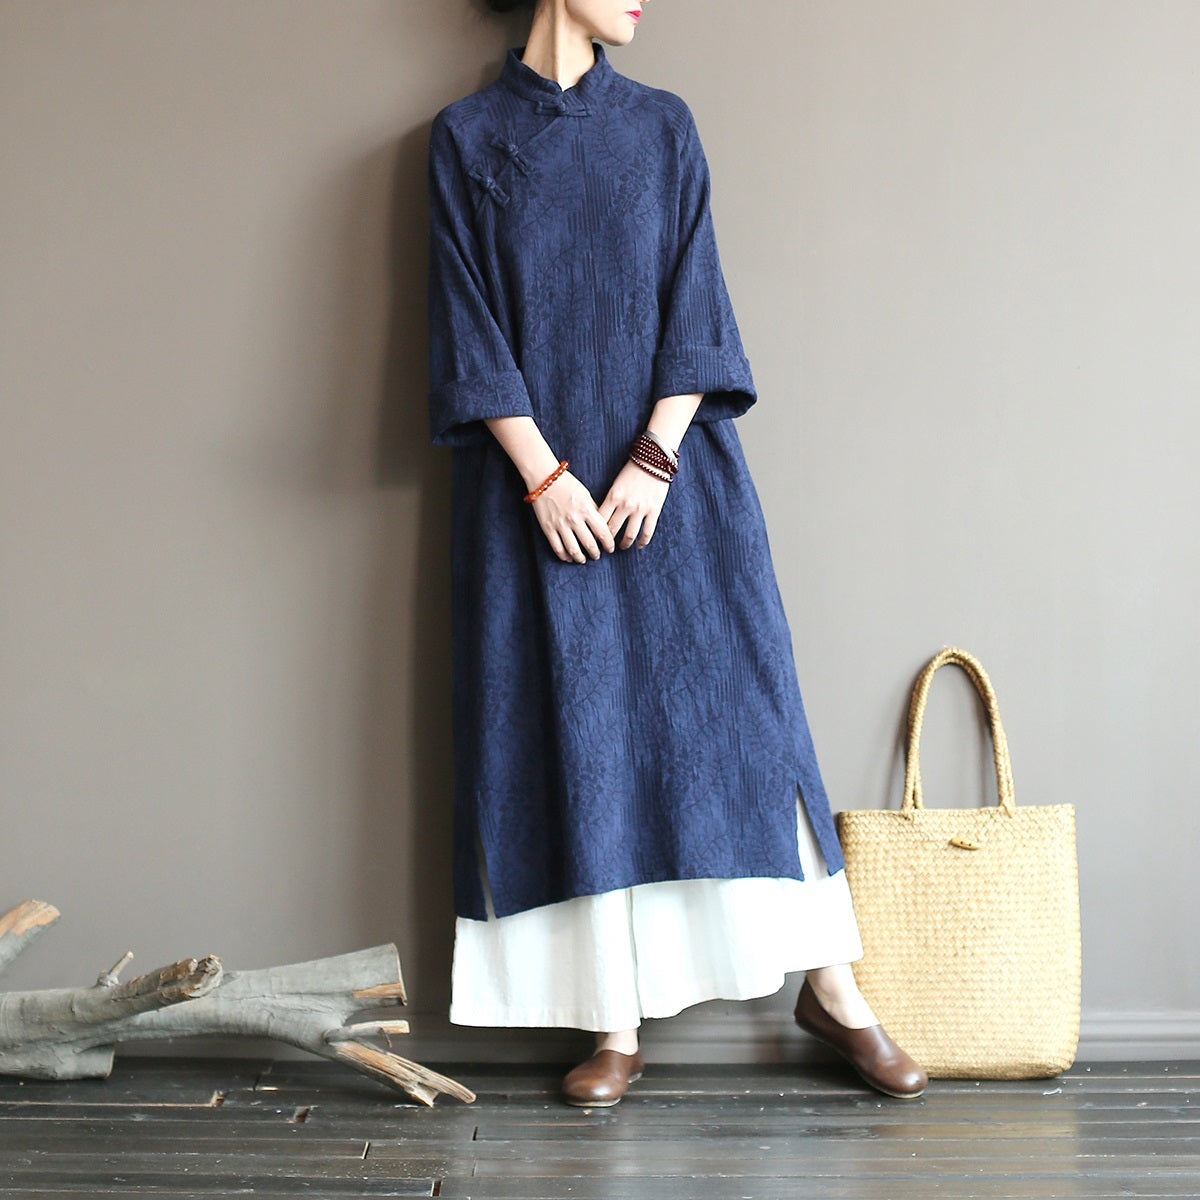 Ethnic style women's spring and autumn loose cotton and linen dress